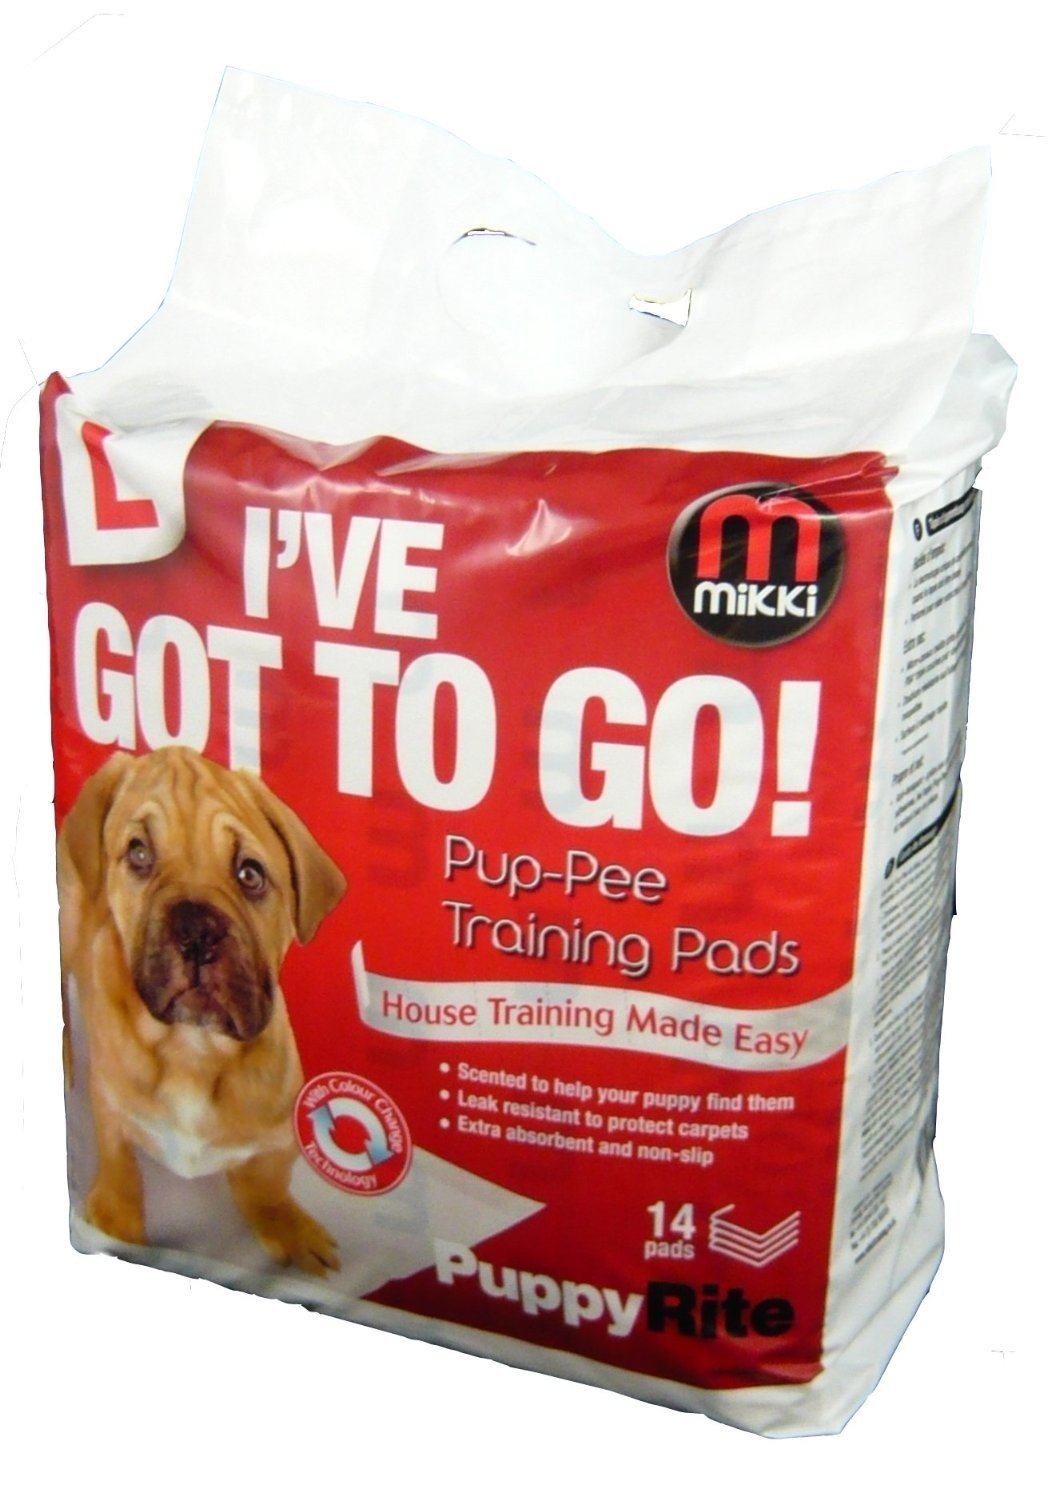 Pup-pee Pads Puppy Training Pads 14 Pack